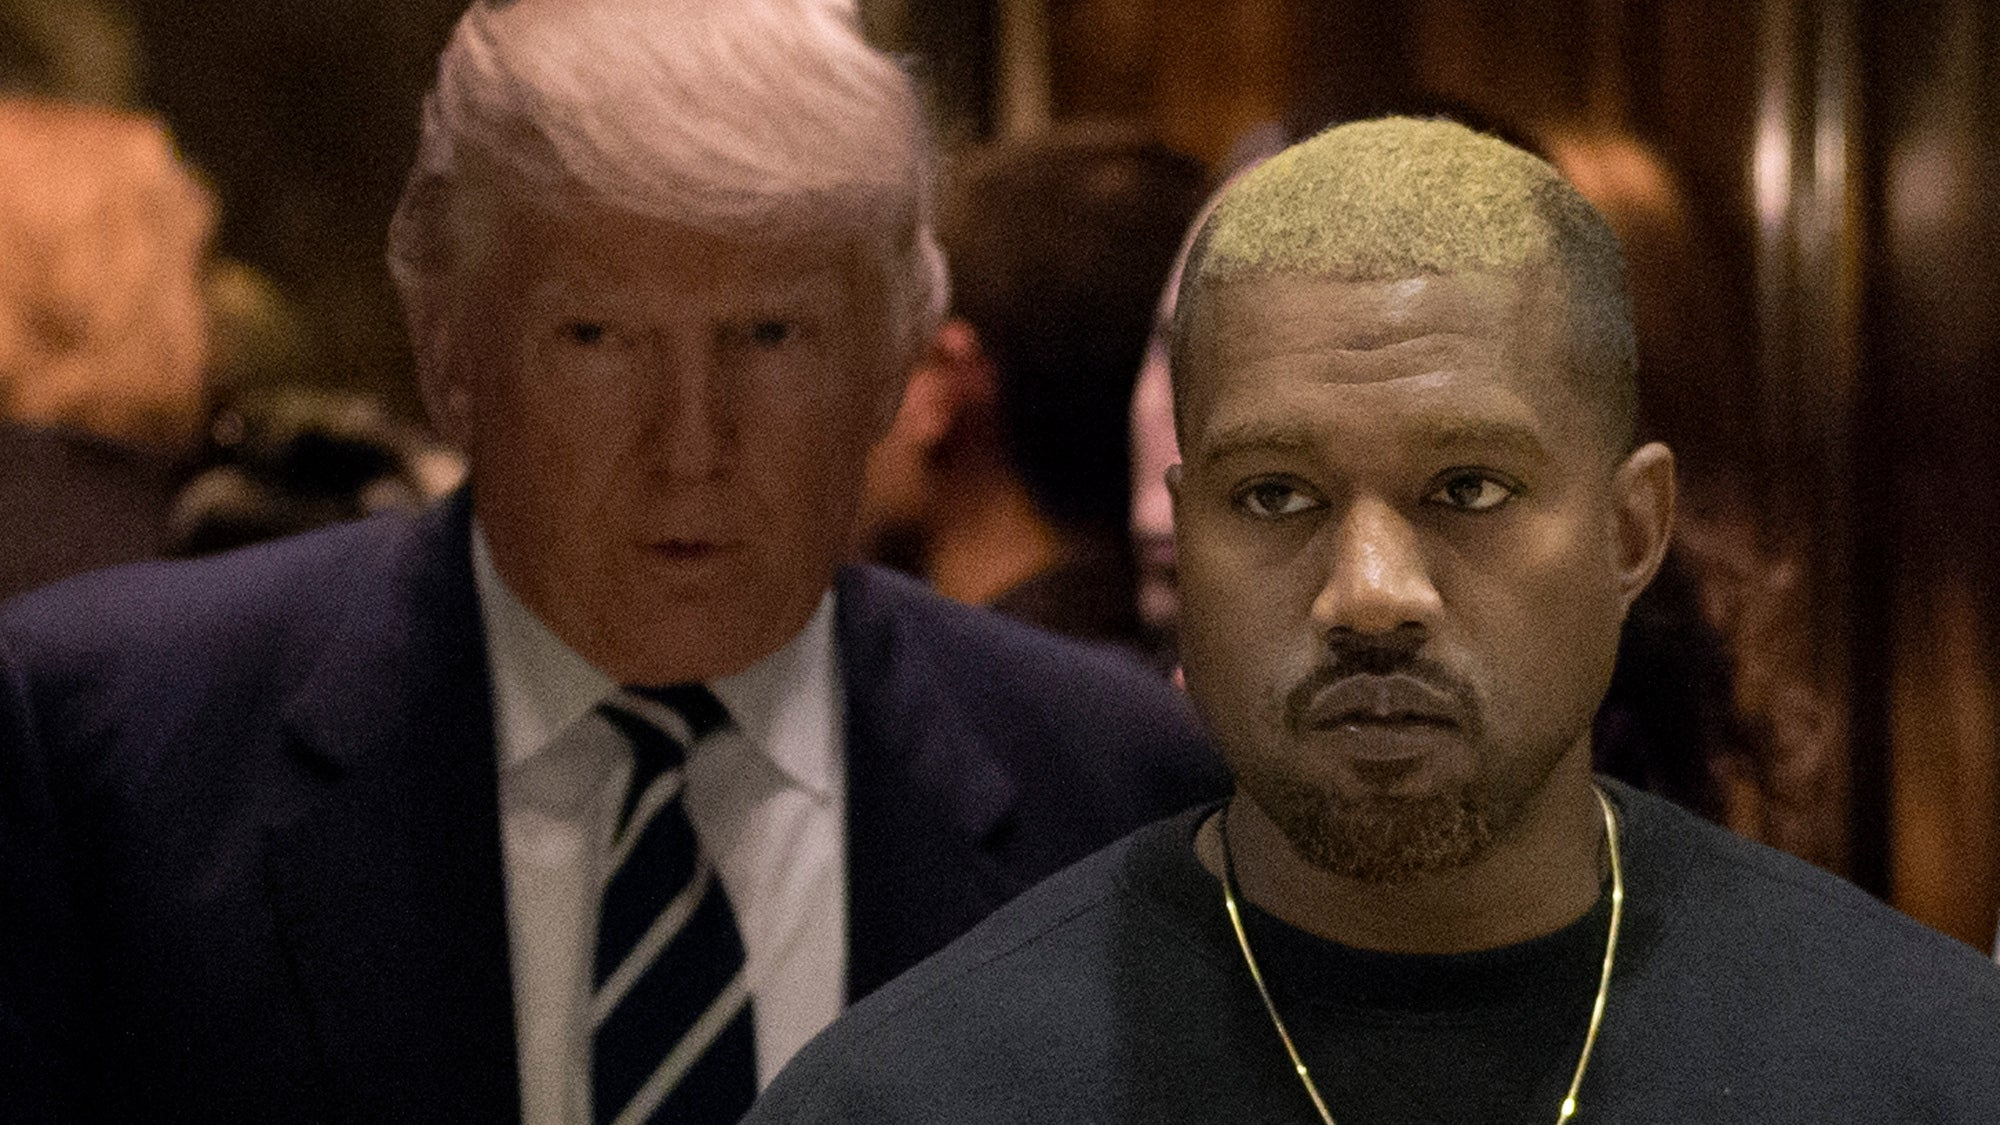 Twitter: Kanye Allegedly Losing 9 Million Followers Was An 'Inconsistency', Not That Other Thing